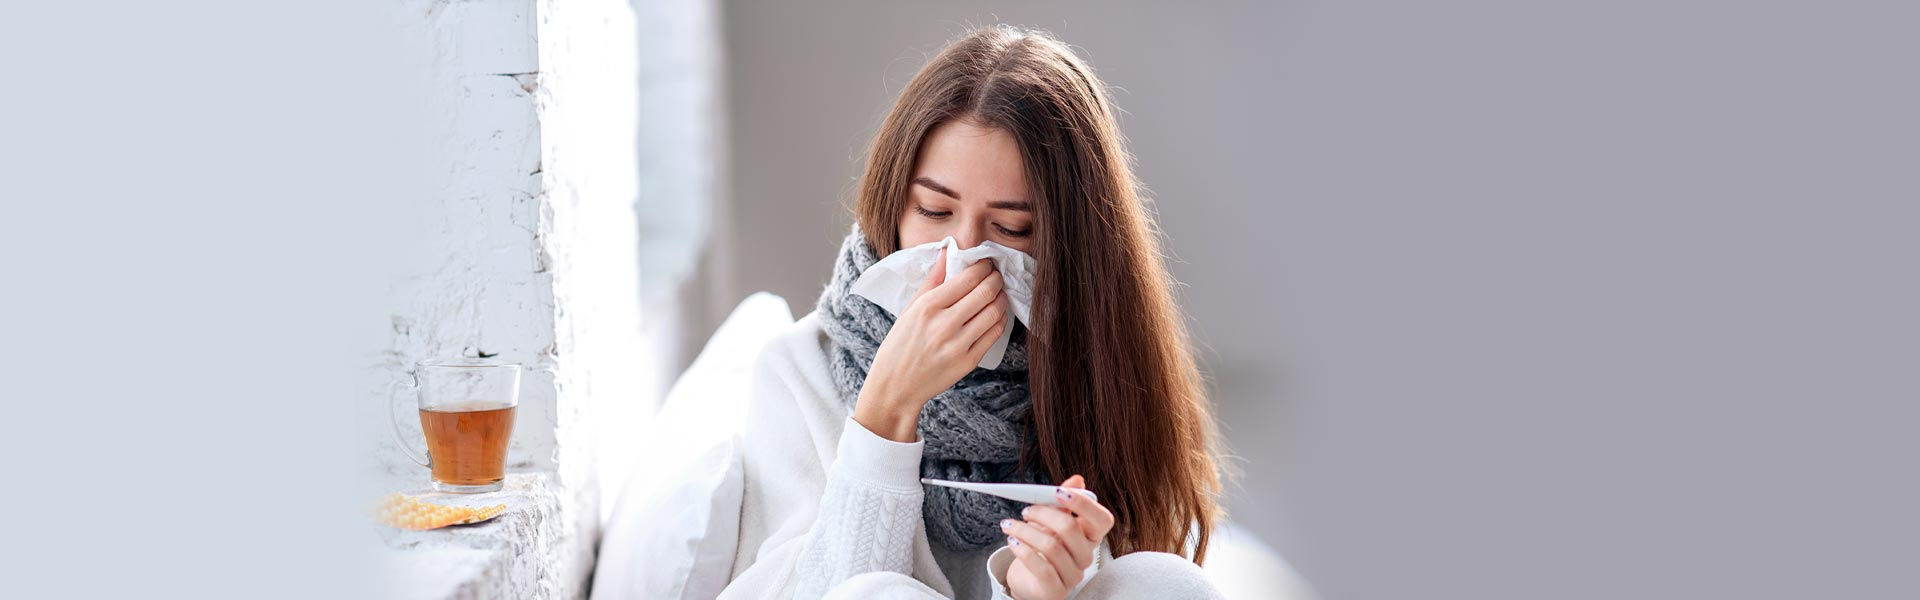 Flu Cold Emergency Services in Houston, TX